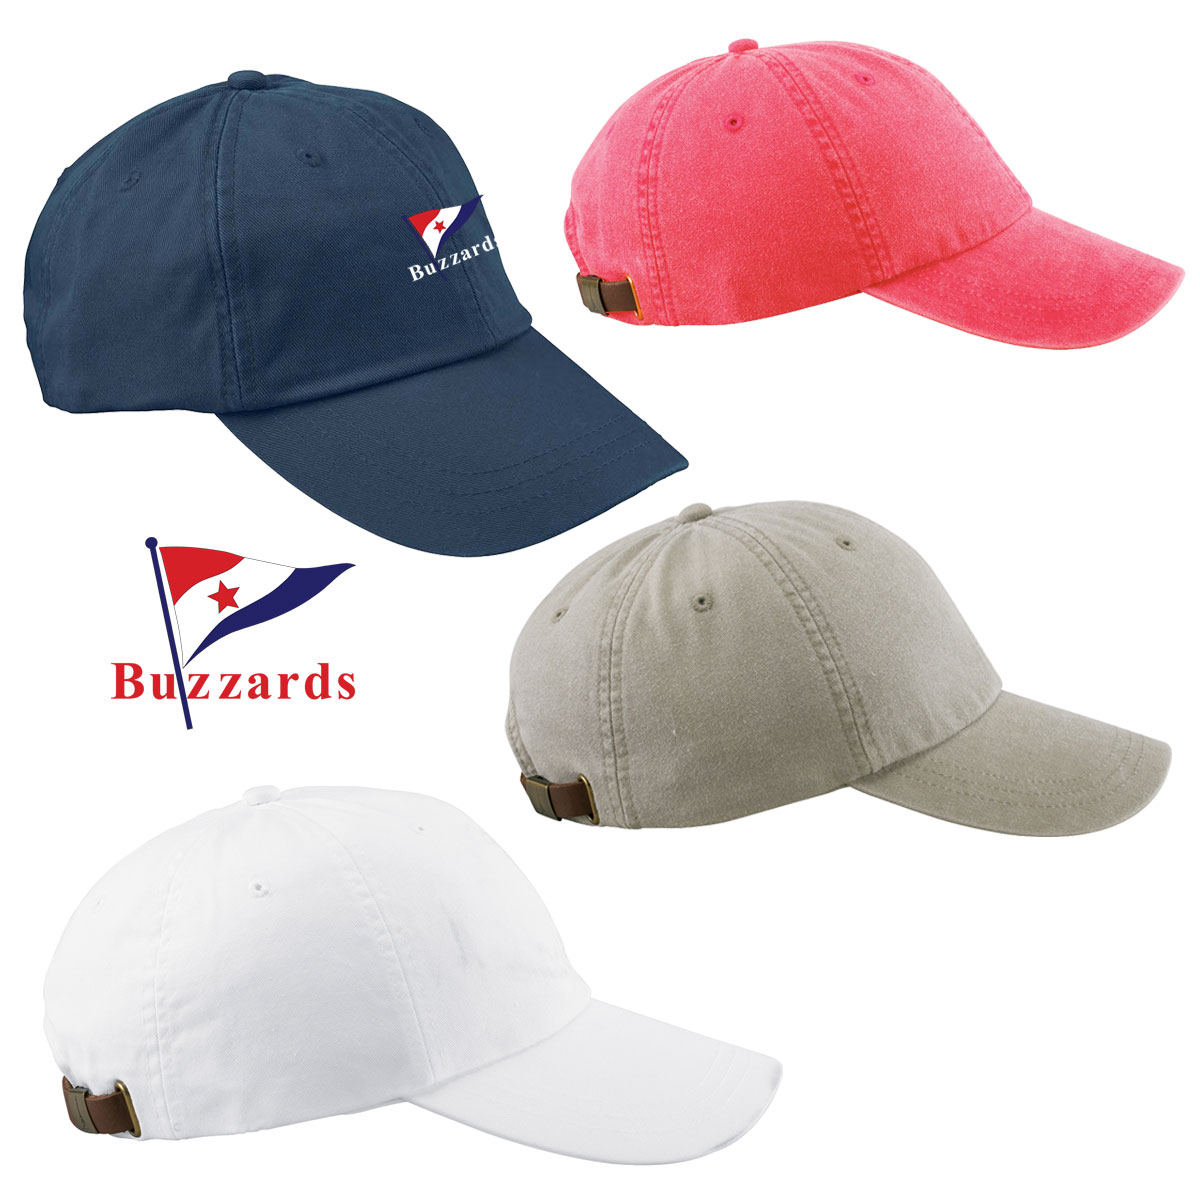 Buzzards Yacht Club - Adjustable Cap